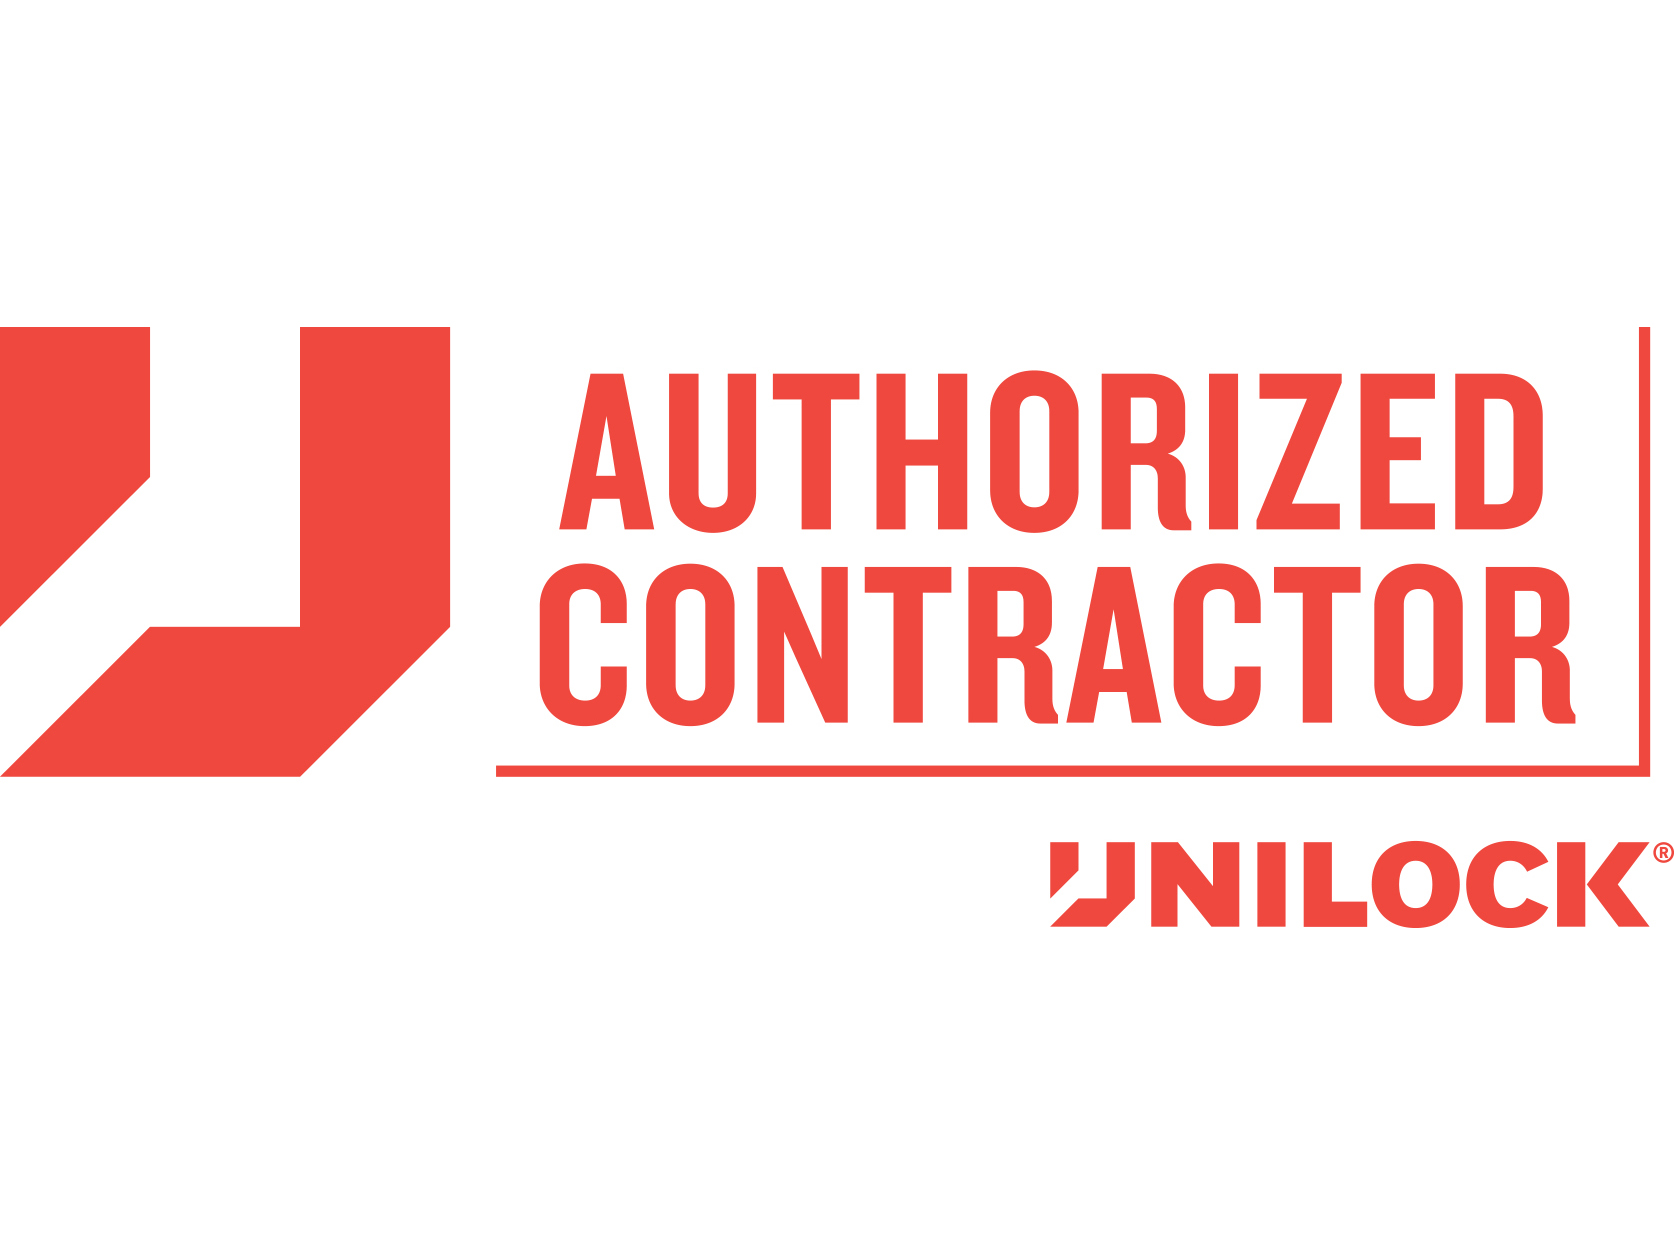 Copy of Professional Unilock Authorized Contractor for front yard landscaping in Sharon MA